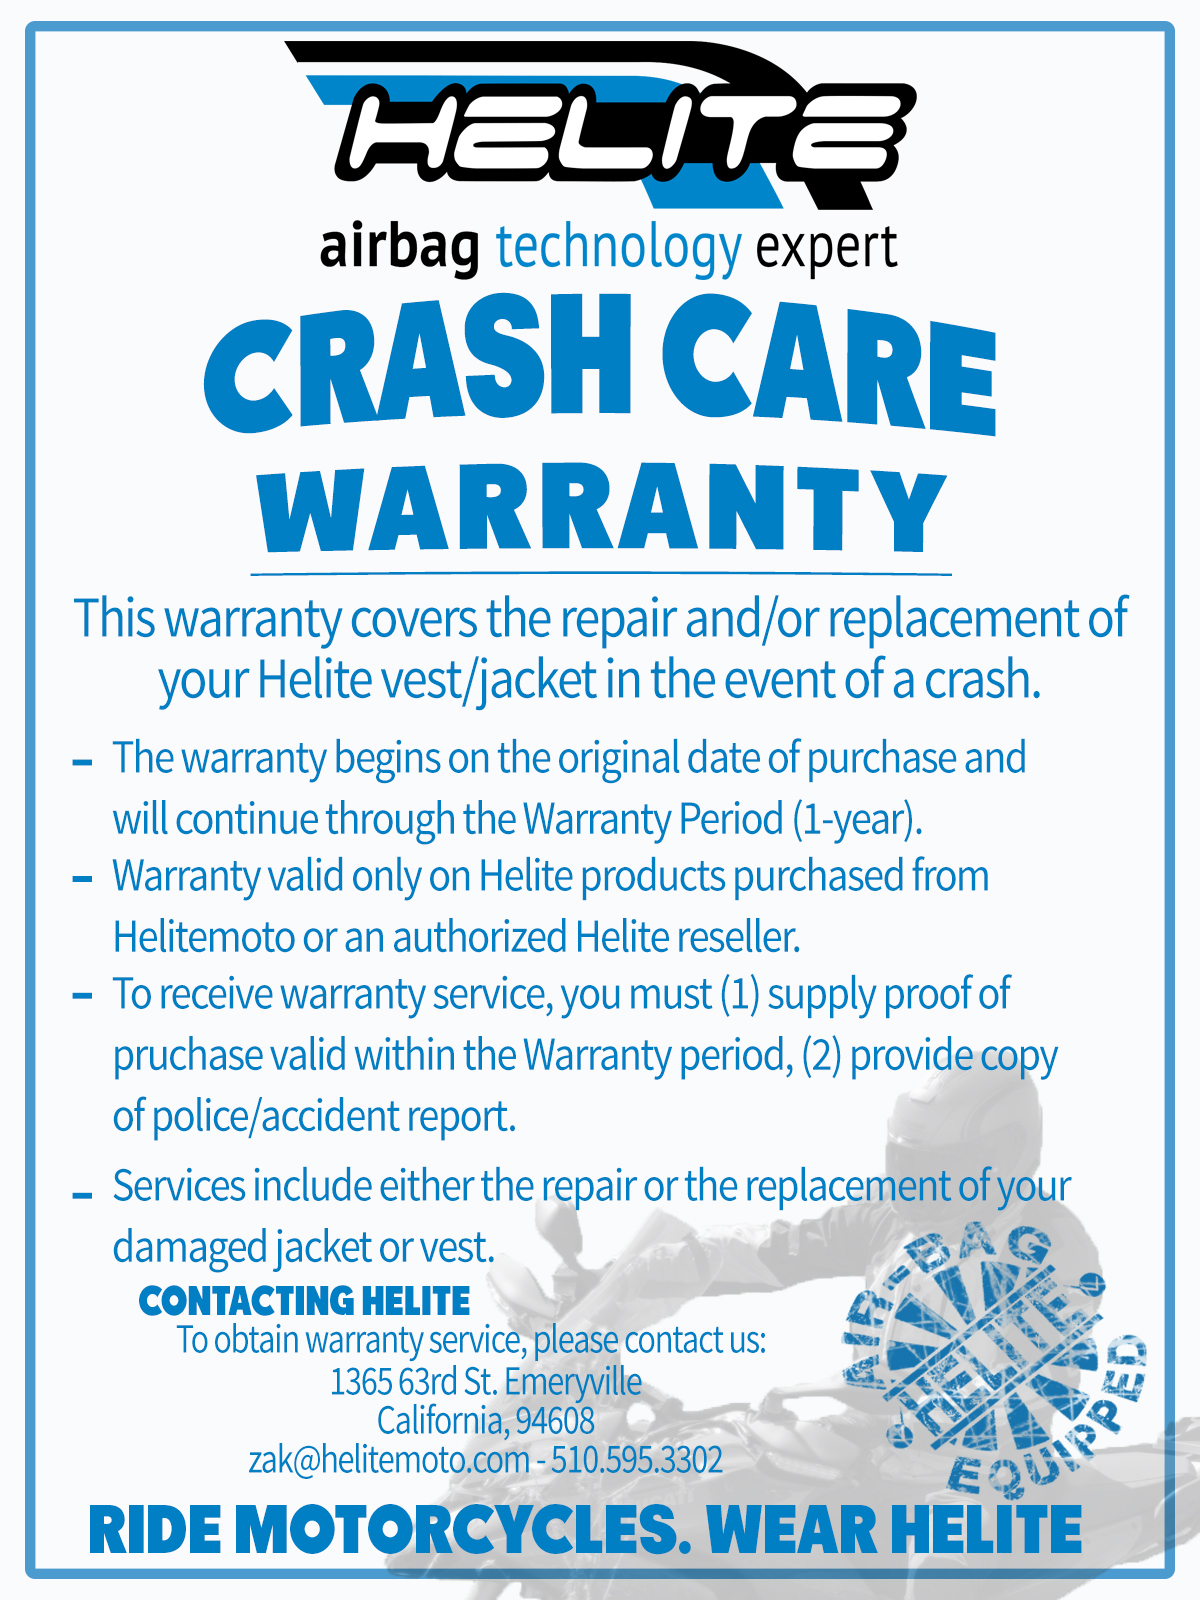 crach-care-warranty-card.jpg